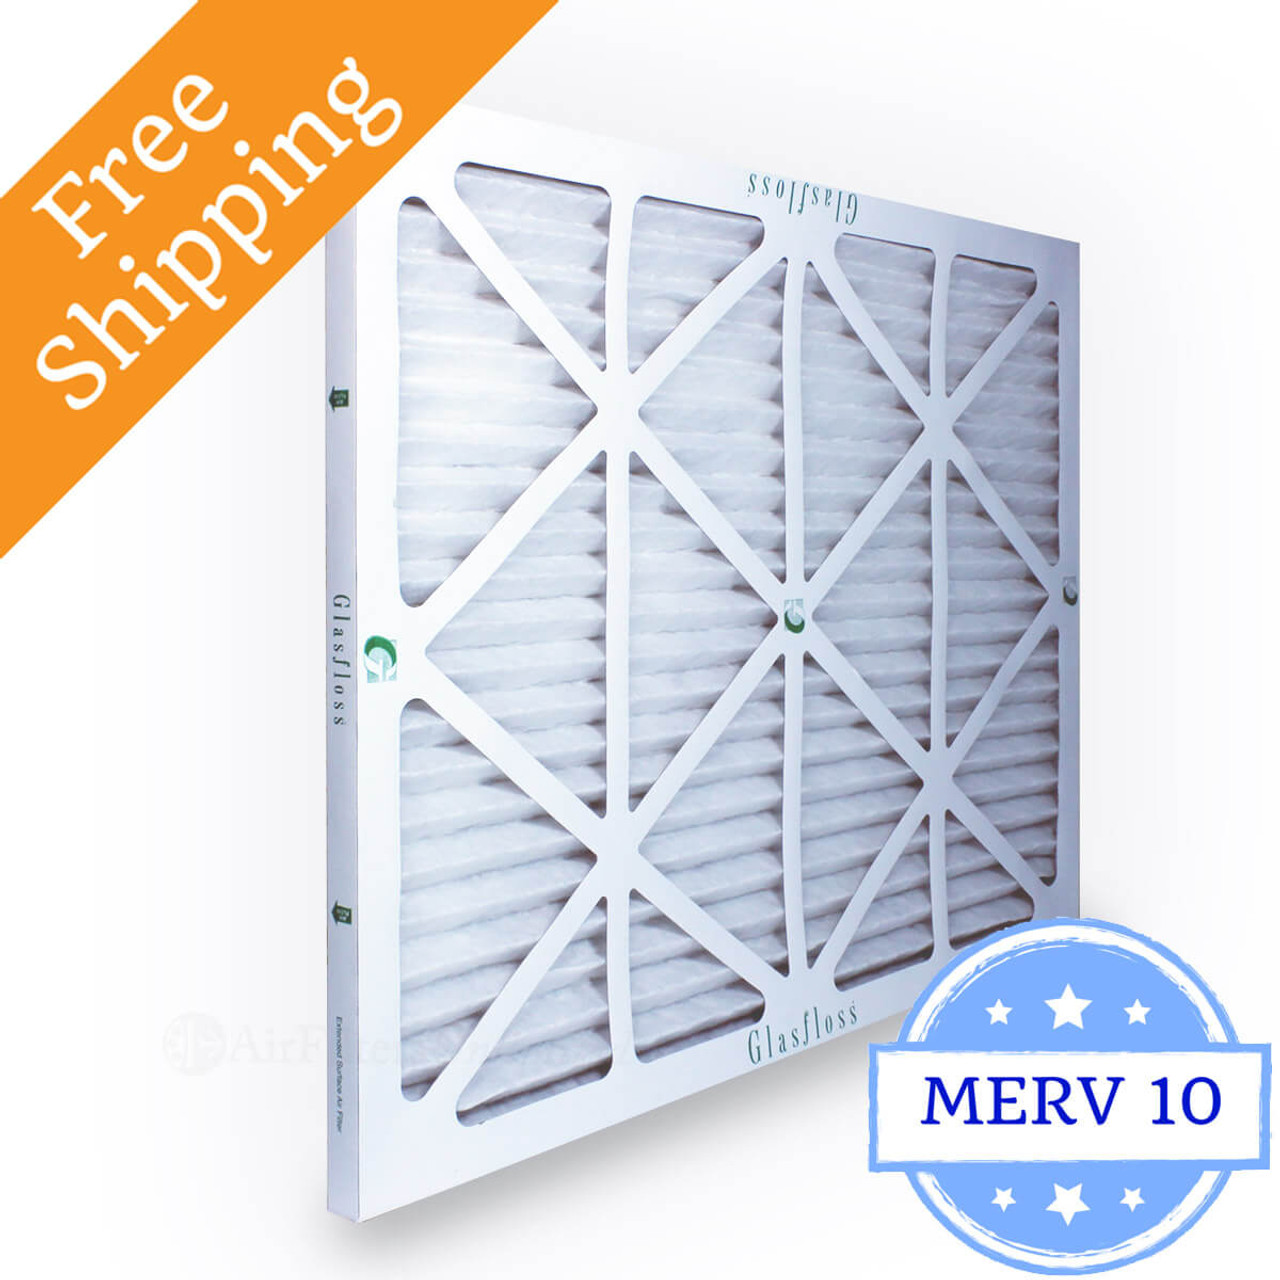 6 Pack 16x20x4 Merv 8 Furnace Filter by Glasfloss Industries